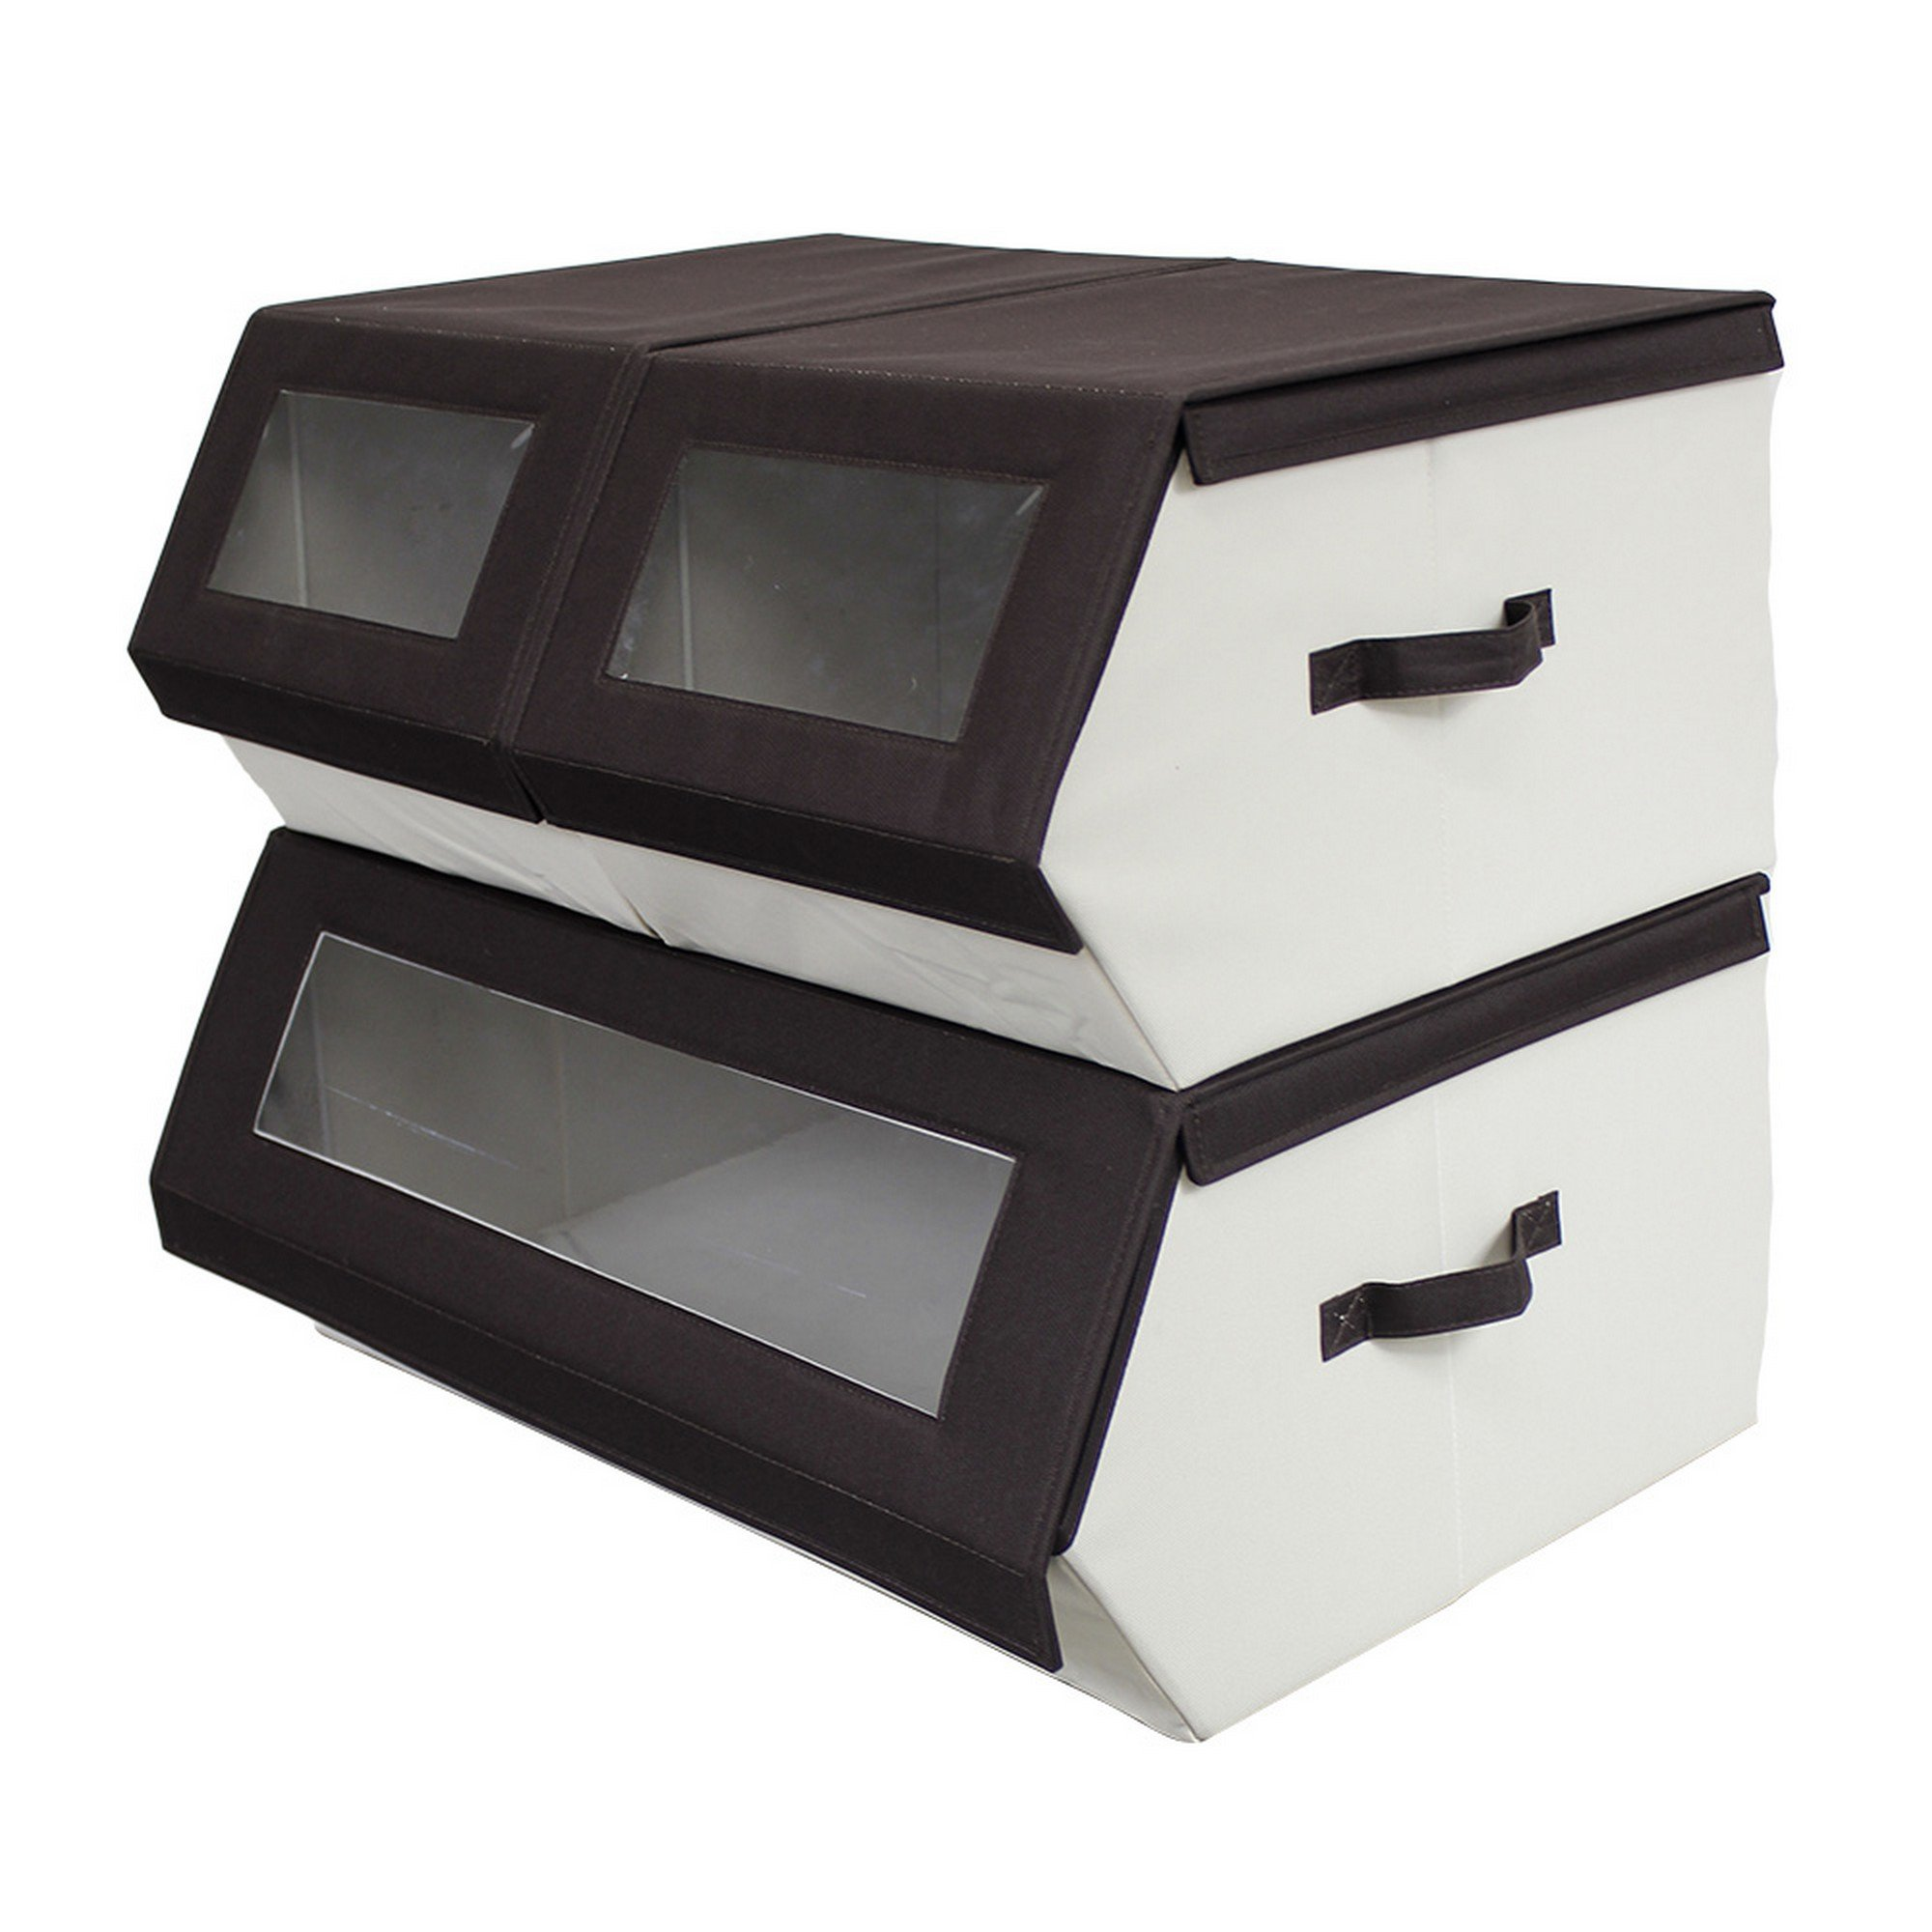 Nouvelle Legende Closet Organizer Easy Storage Bins Collapsible Compartments Set of 3 Pieces